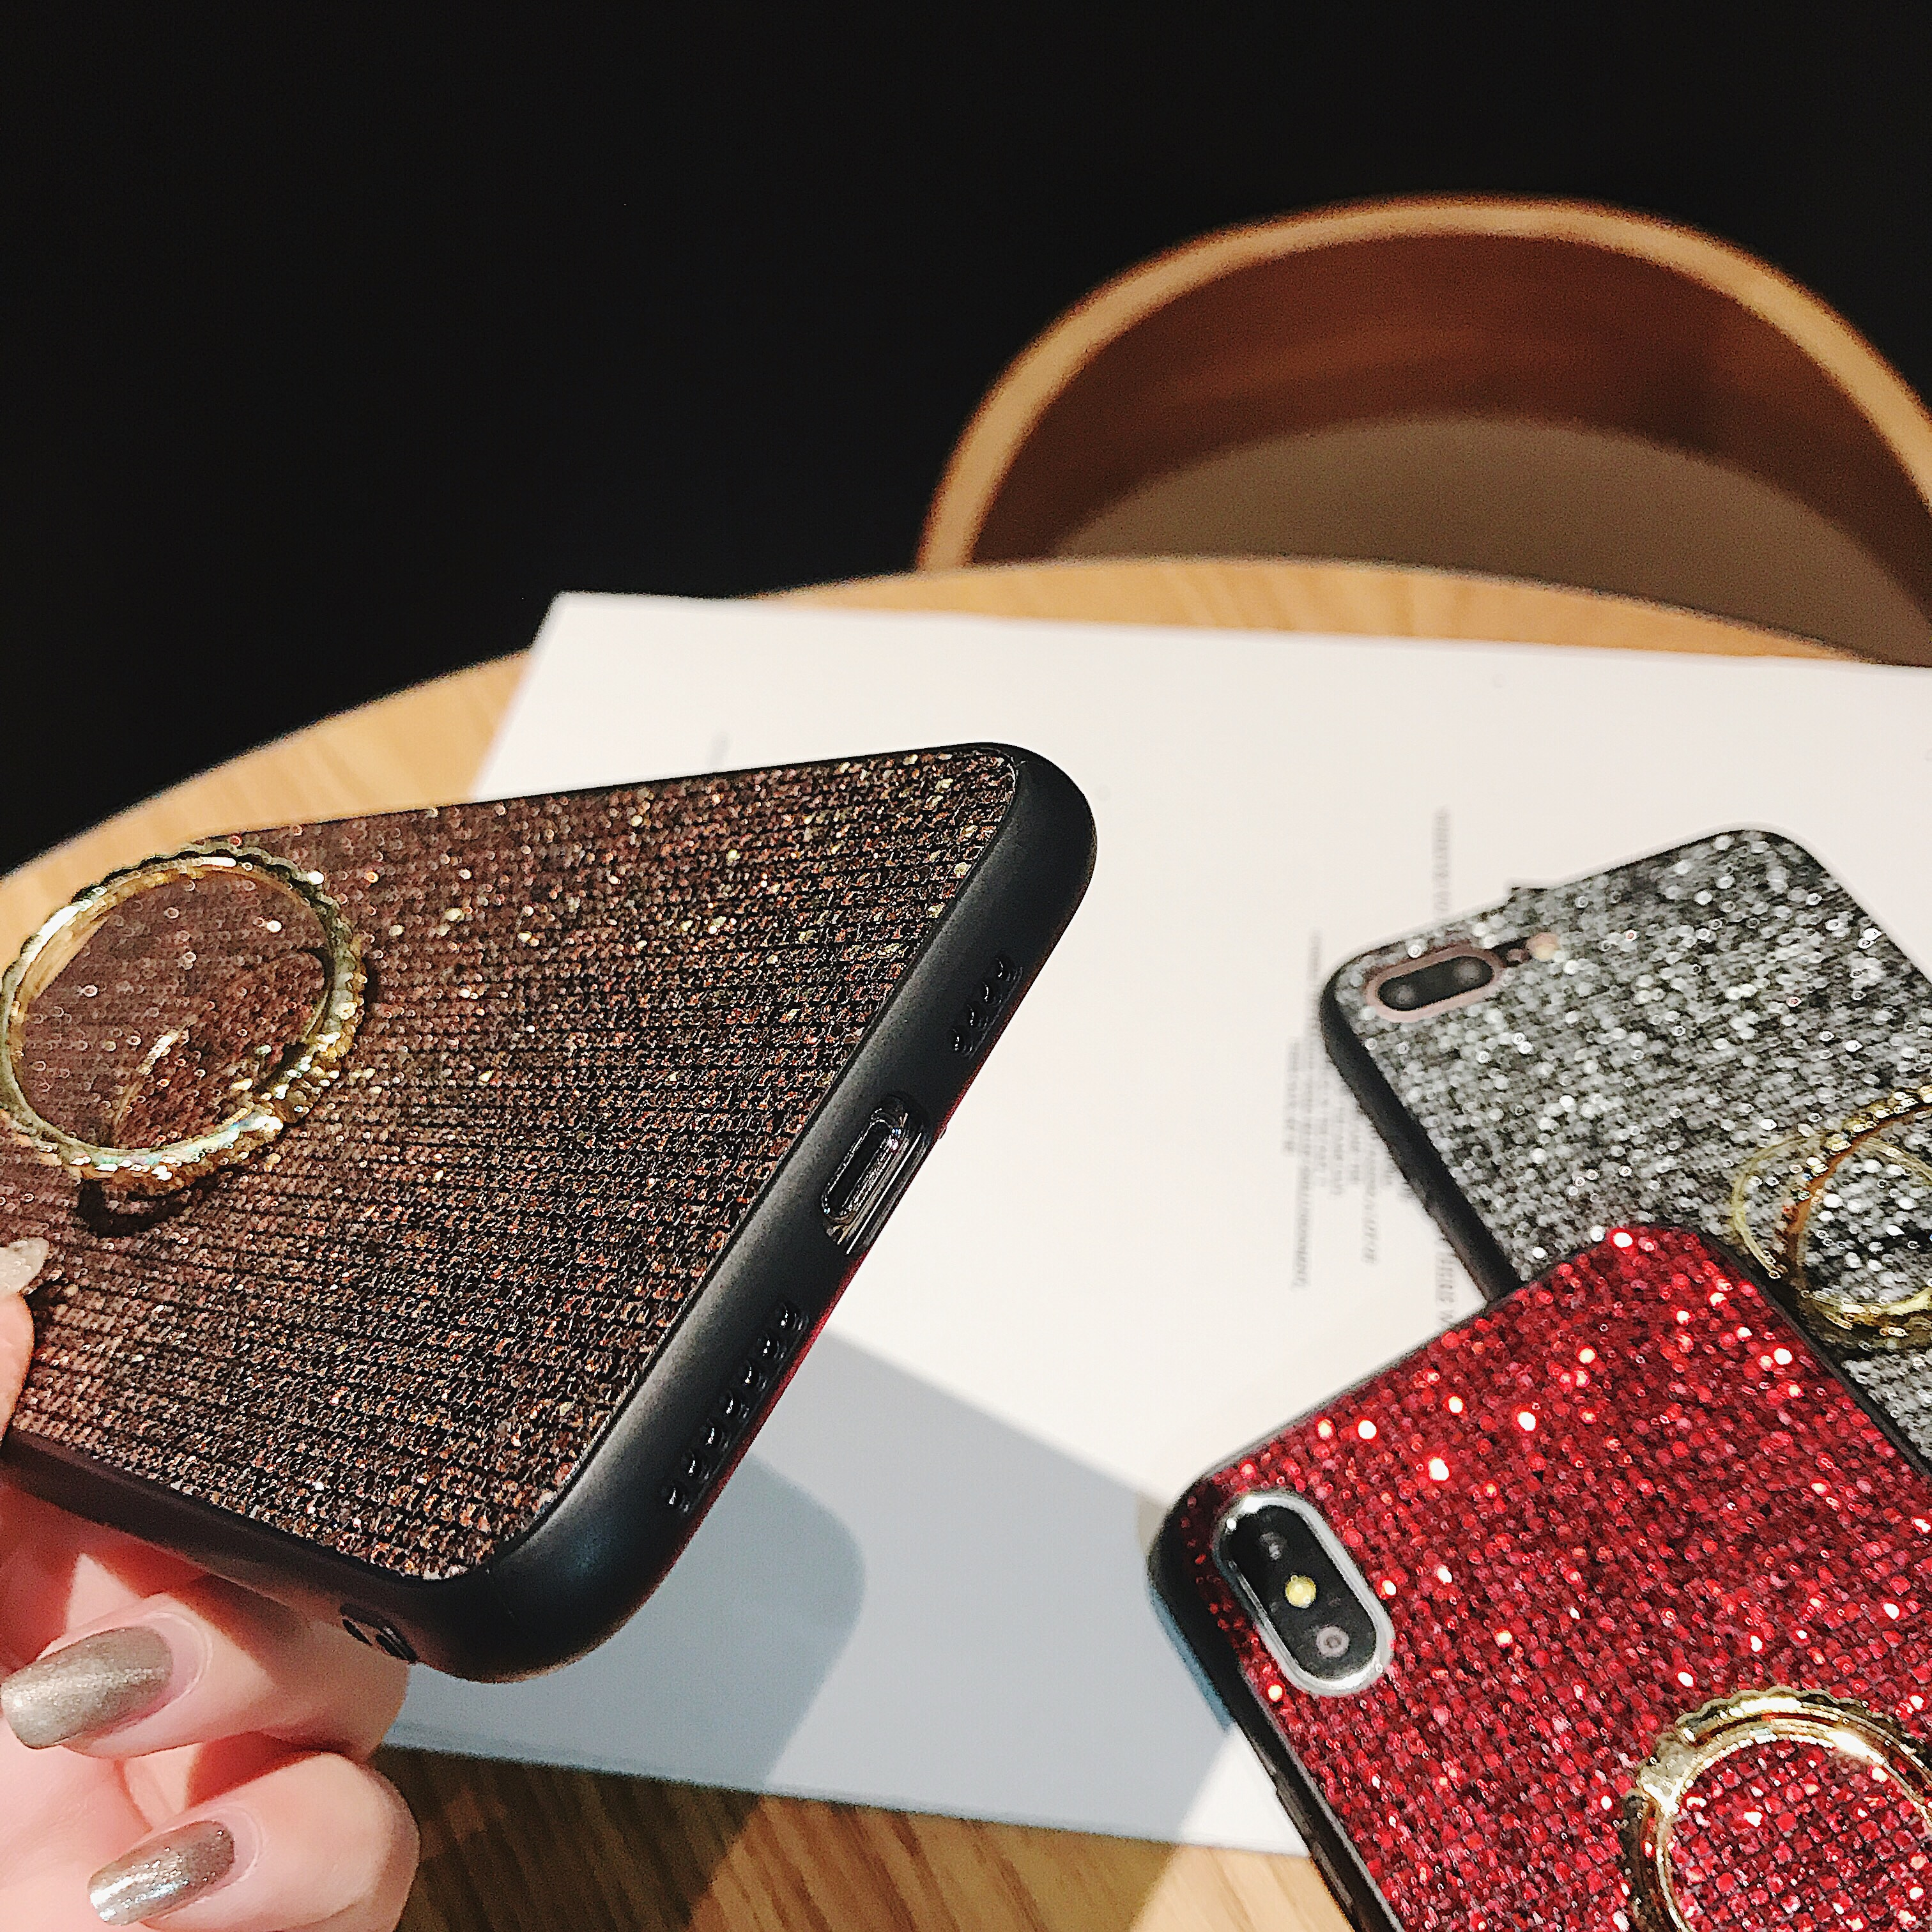 COPEONE Luxury Rhinestone Case for iPhone 7 7 Plus Plating Bling Cases for iPhone 6 6s 8 8 Plus X XS XR XSMAX Ring Holder Stand in Fitted Cases from Cellphones Telecommunications